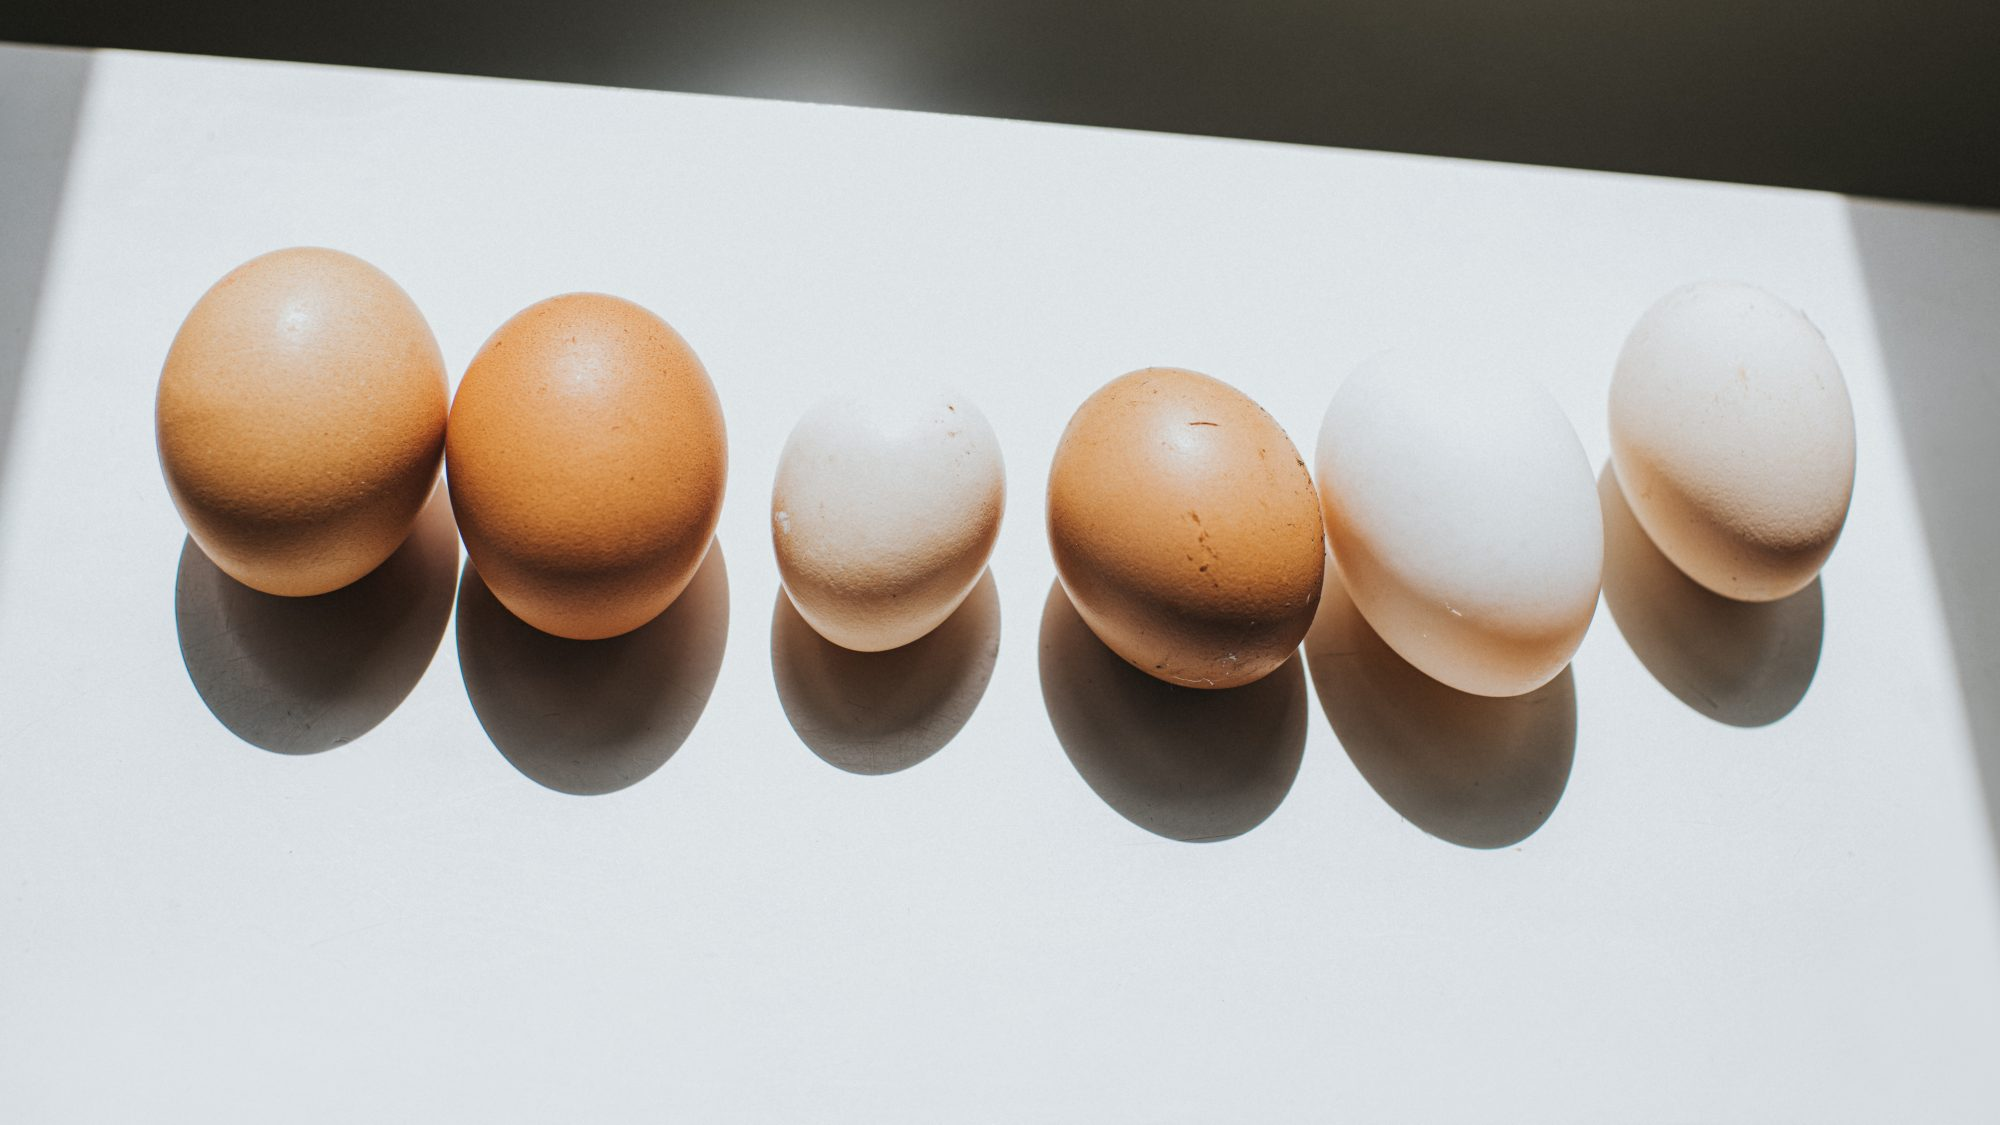 egg-size-differences